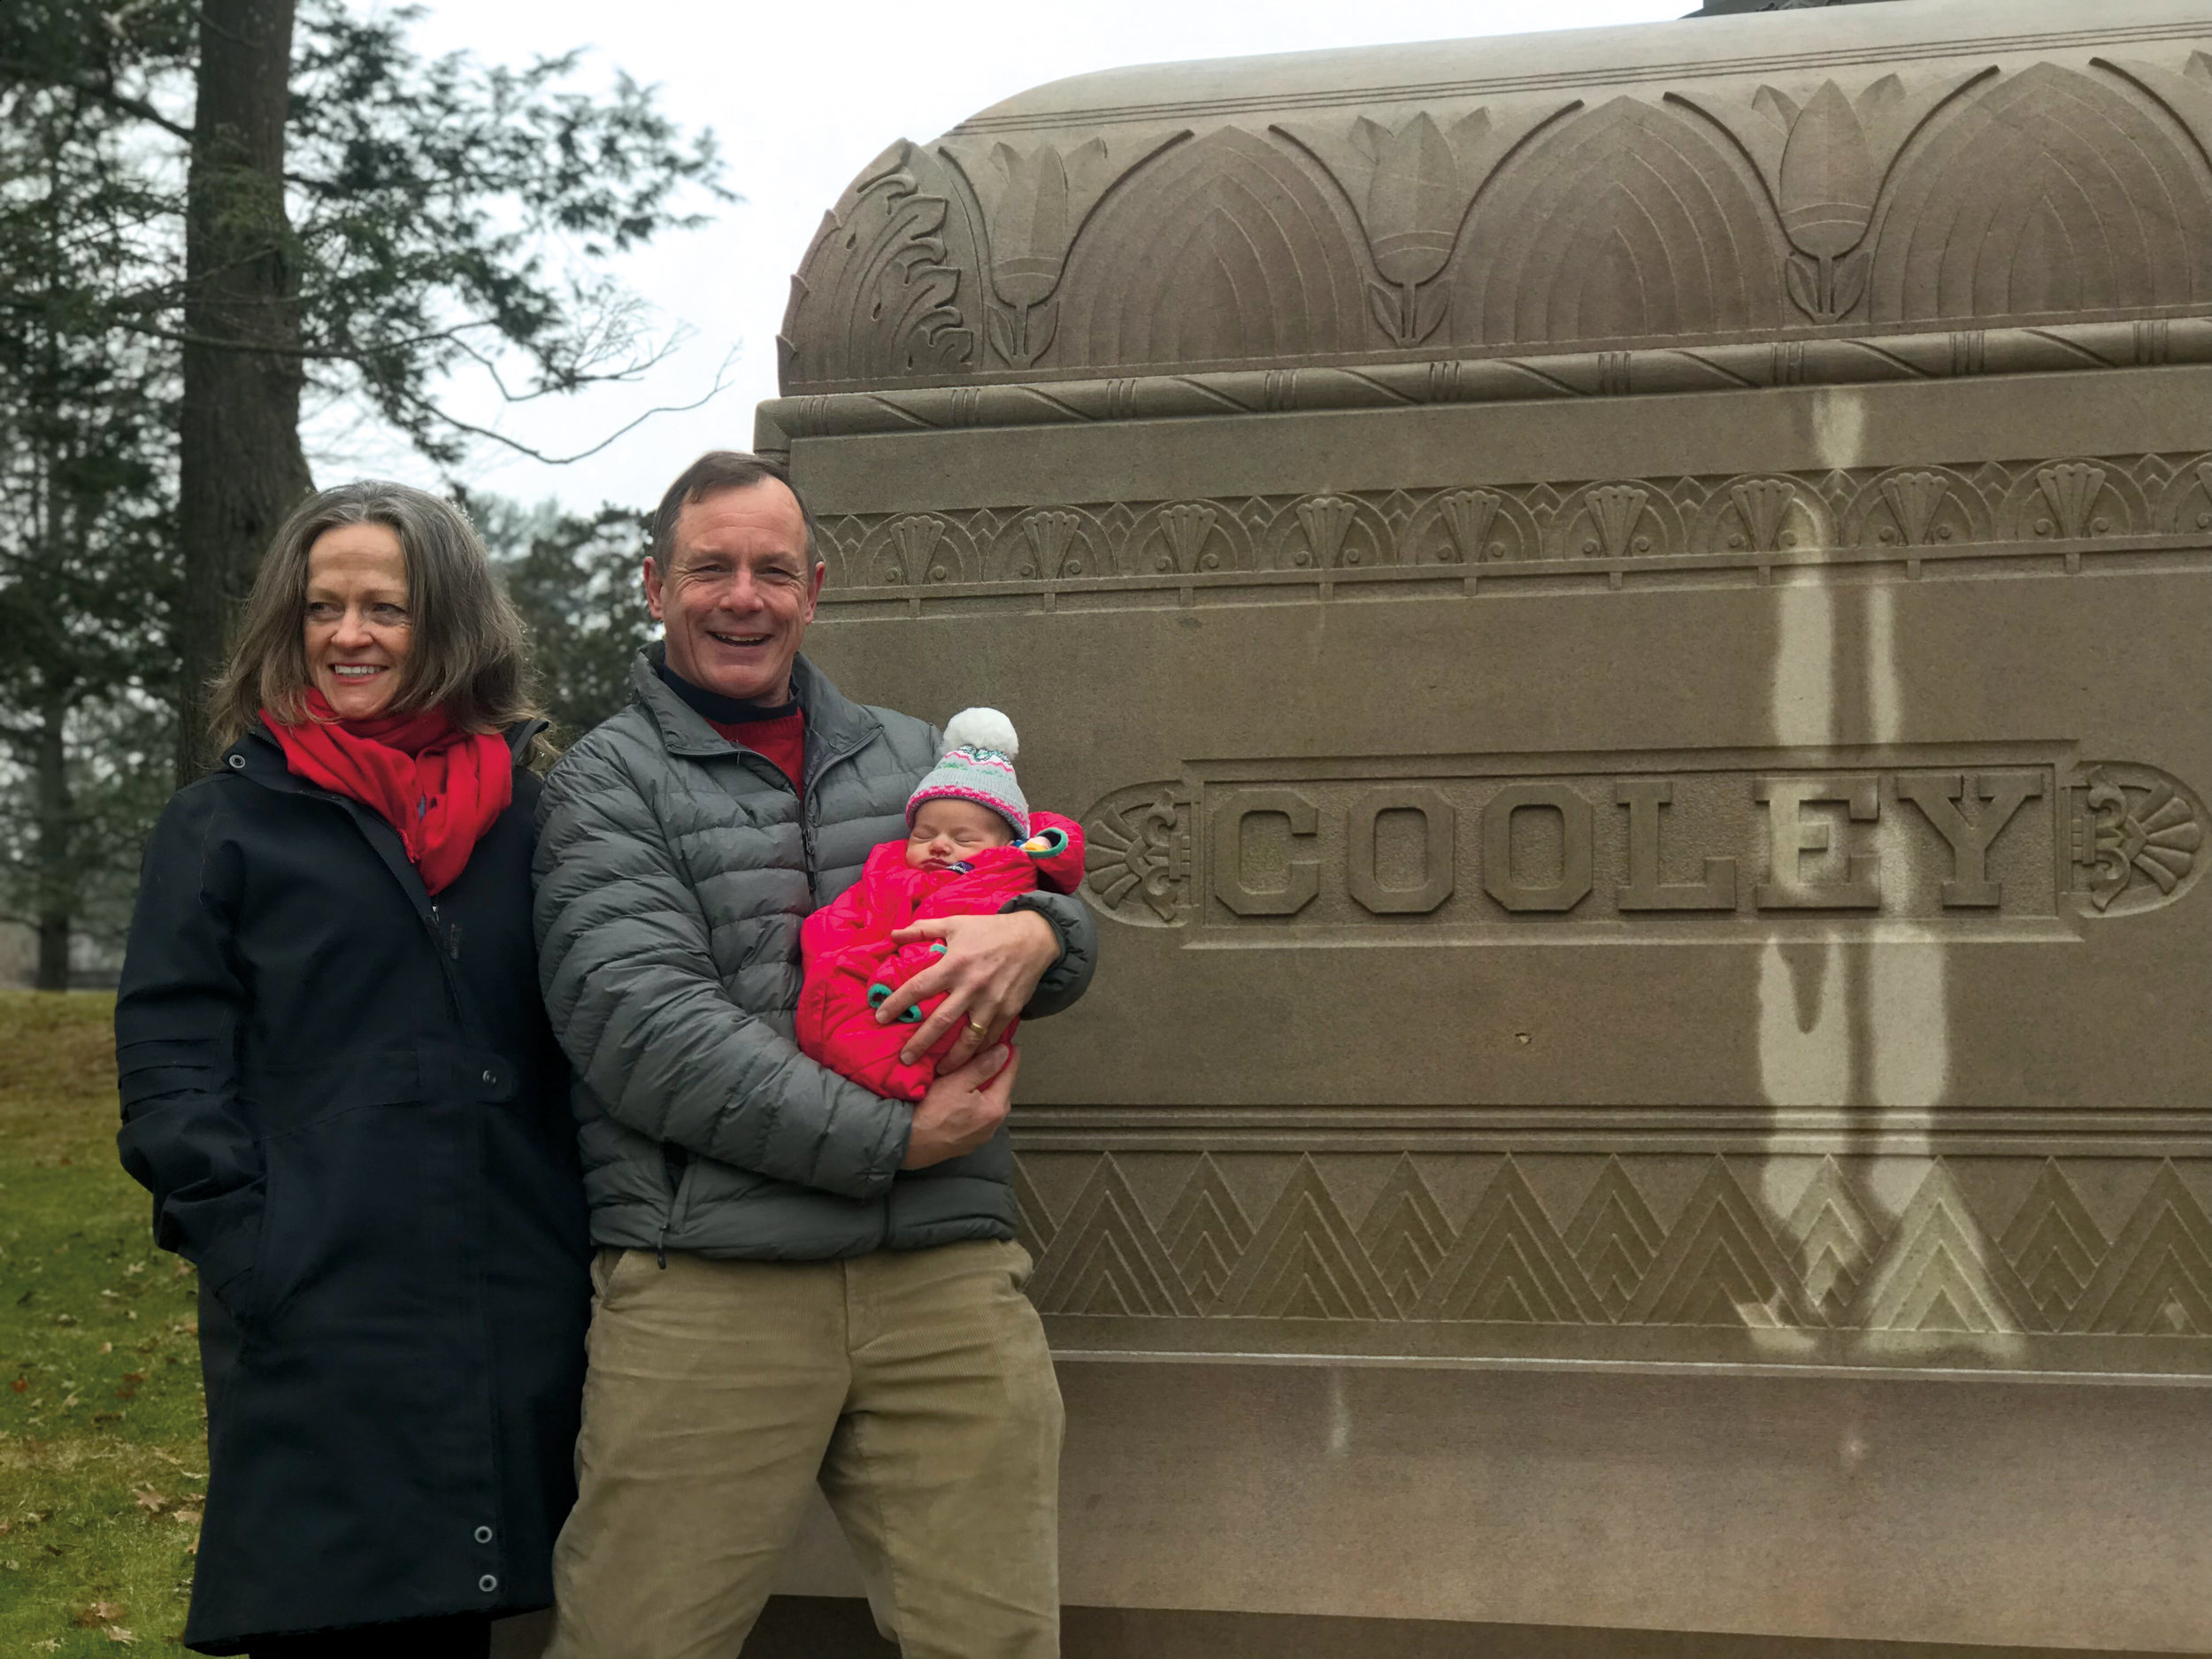 Jeff Cooley '75, with wife Betsy, holding his granddaughter, Claire (daughter of Ben Cooley '03), in front of the resting place of Jeff's father, Paul Cooley (Form of 1926).